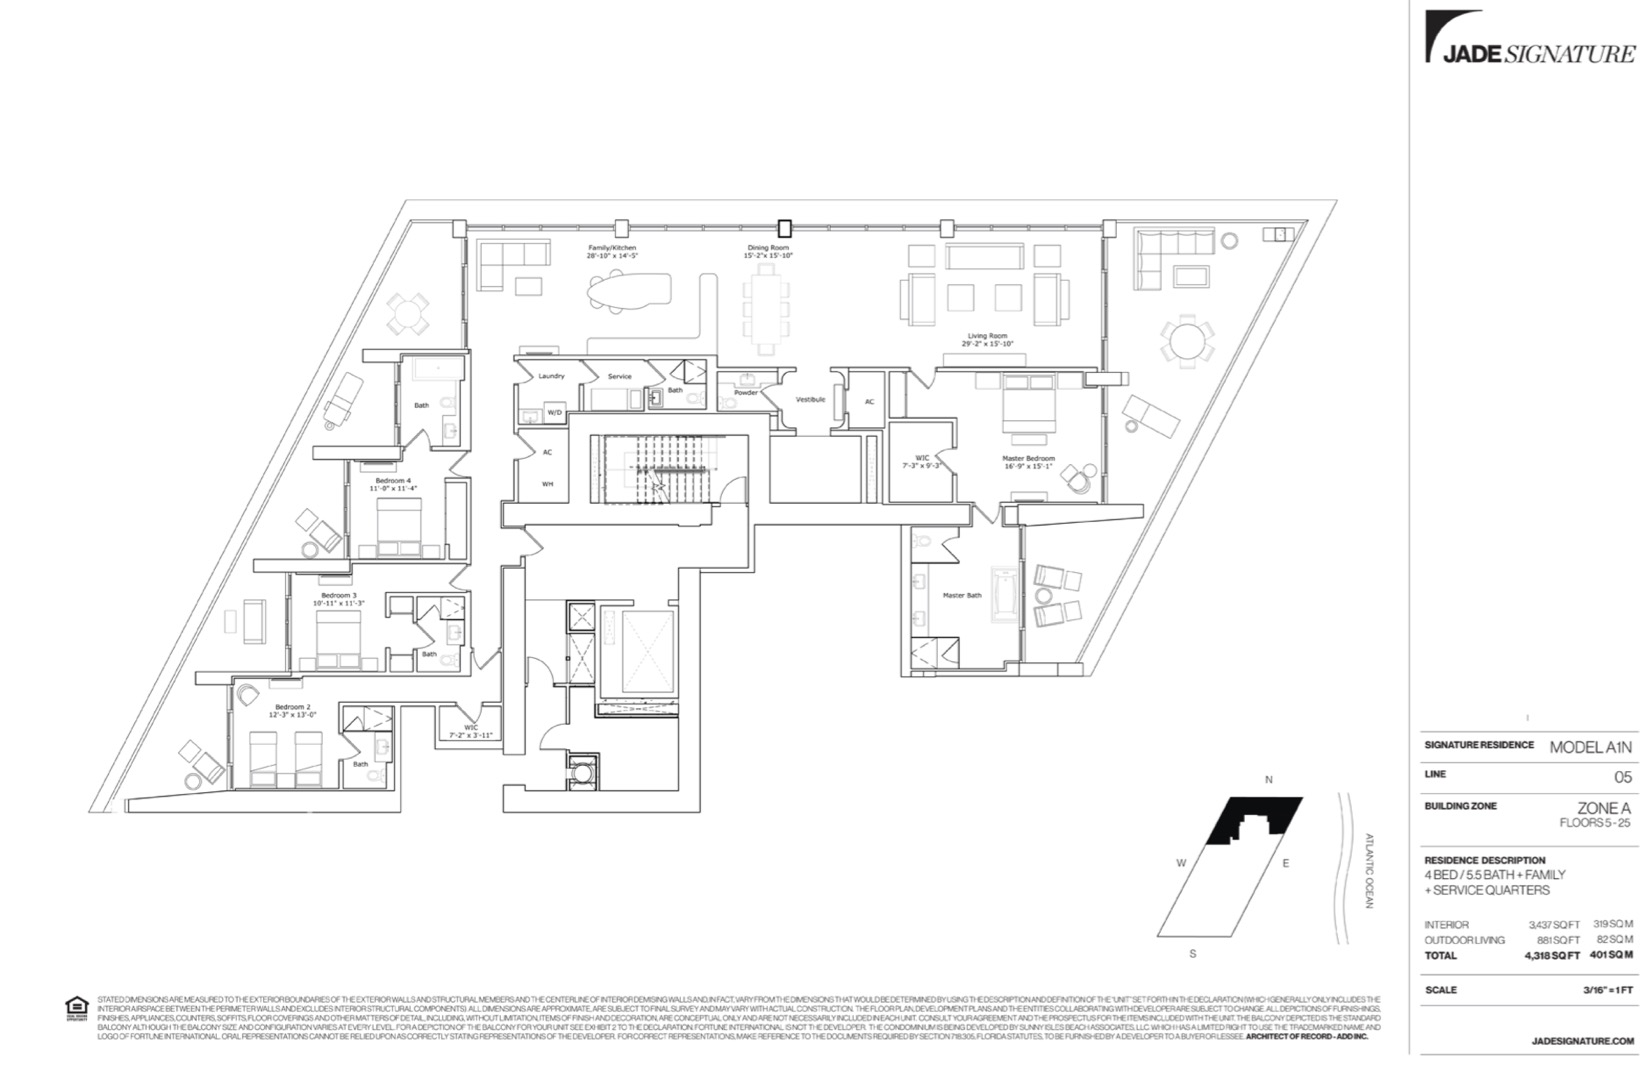 Floor plan image A1N - 4/5.5/Family Room/ServiceQuarters  - 3437 sqft image